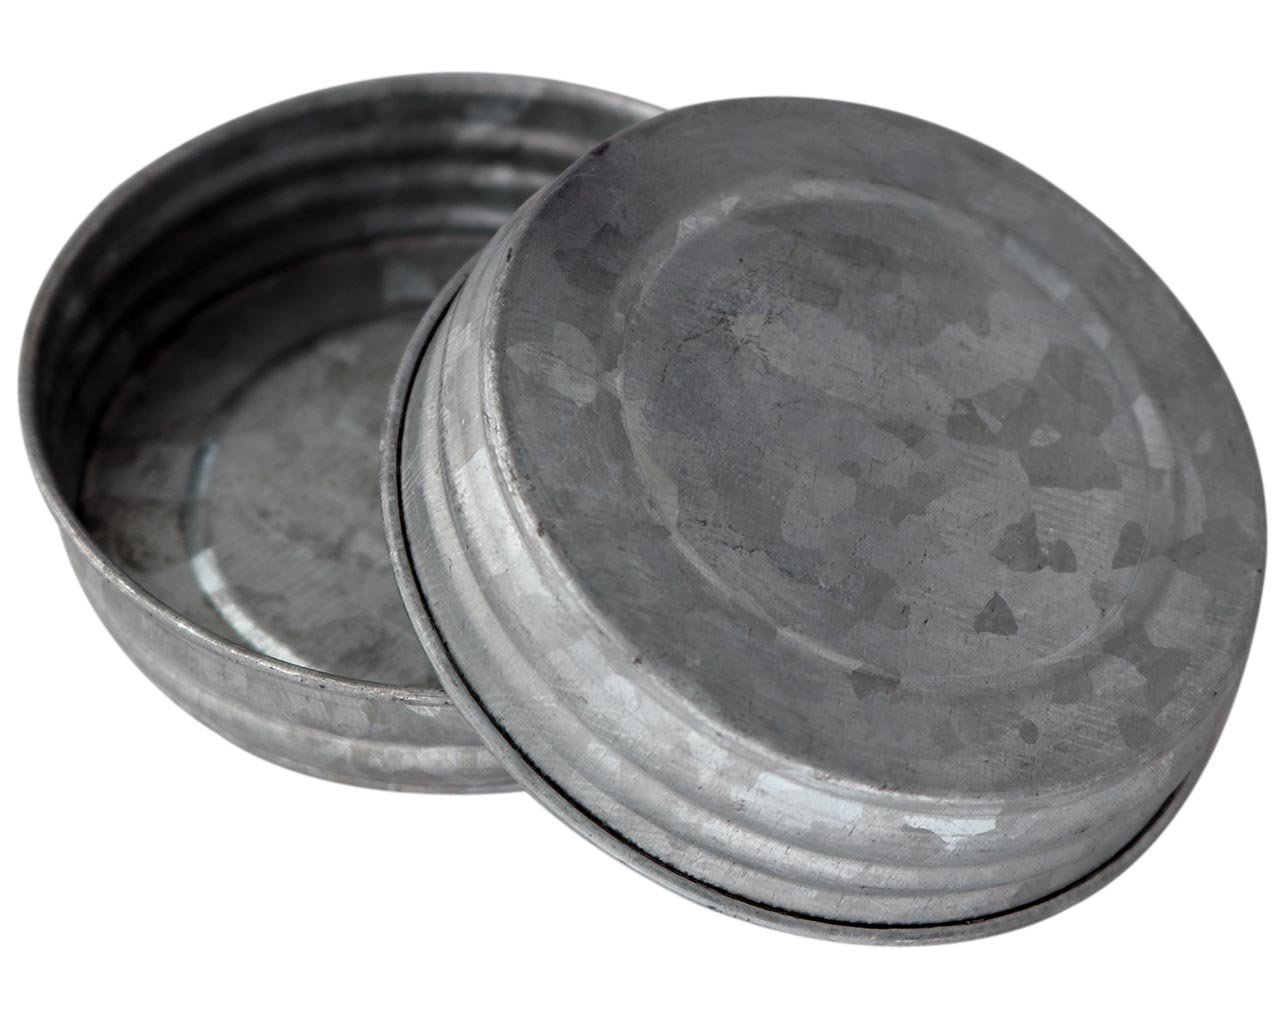 Galvanized Vintage Reproduction Lids for Mason, Ball, Canning Jars (4 Pack, Regular Mouth)